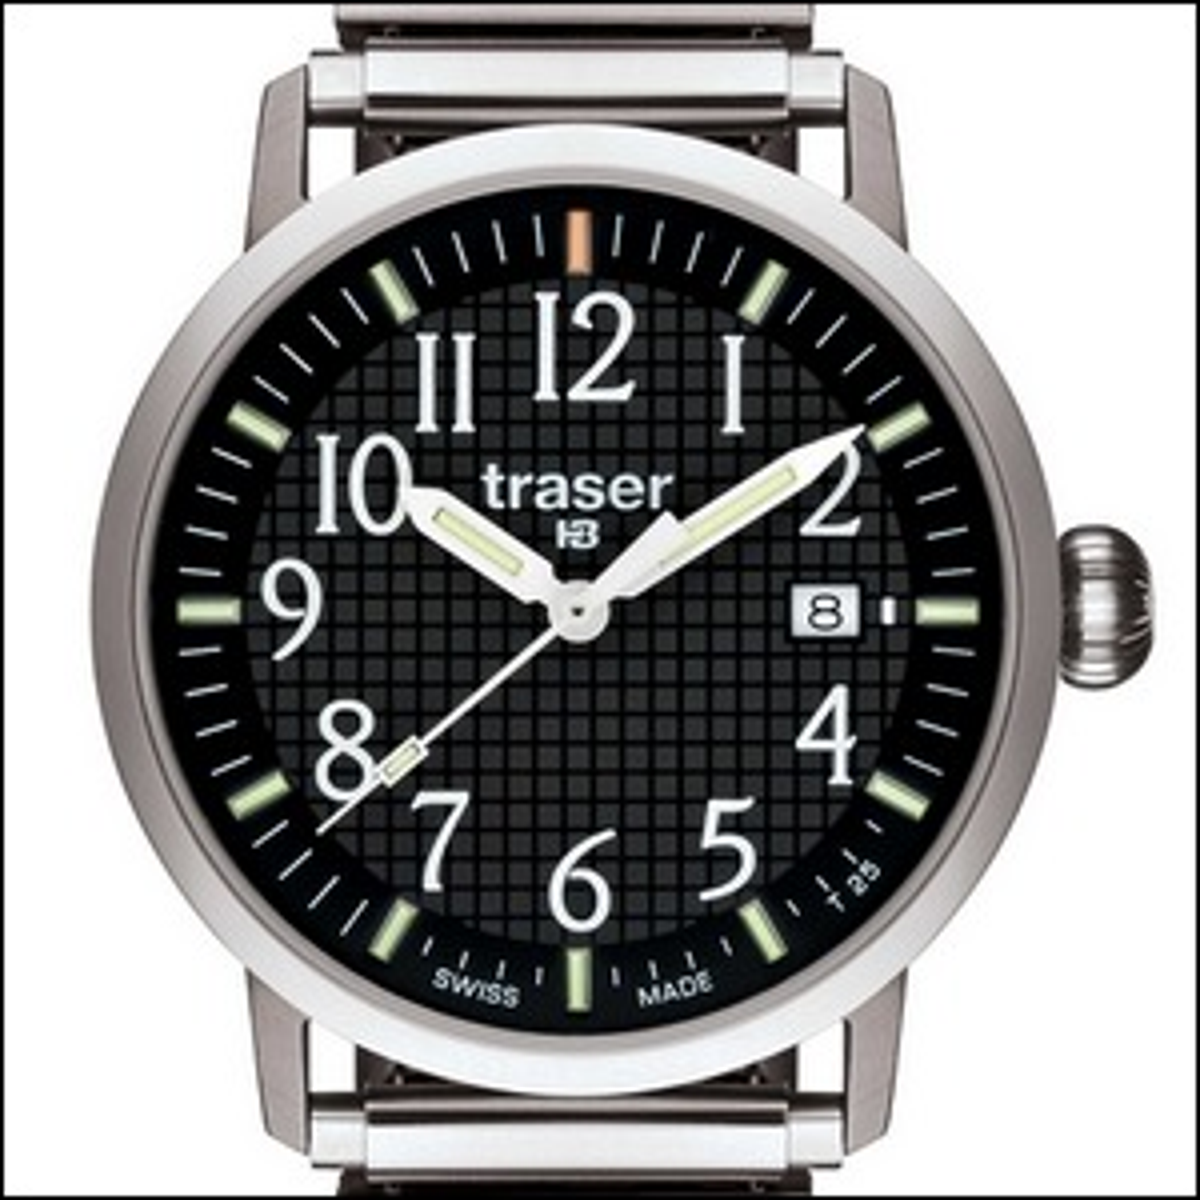 A watch face set to 10:10 in an advertisement.